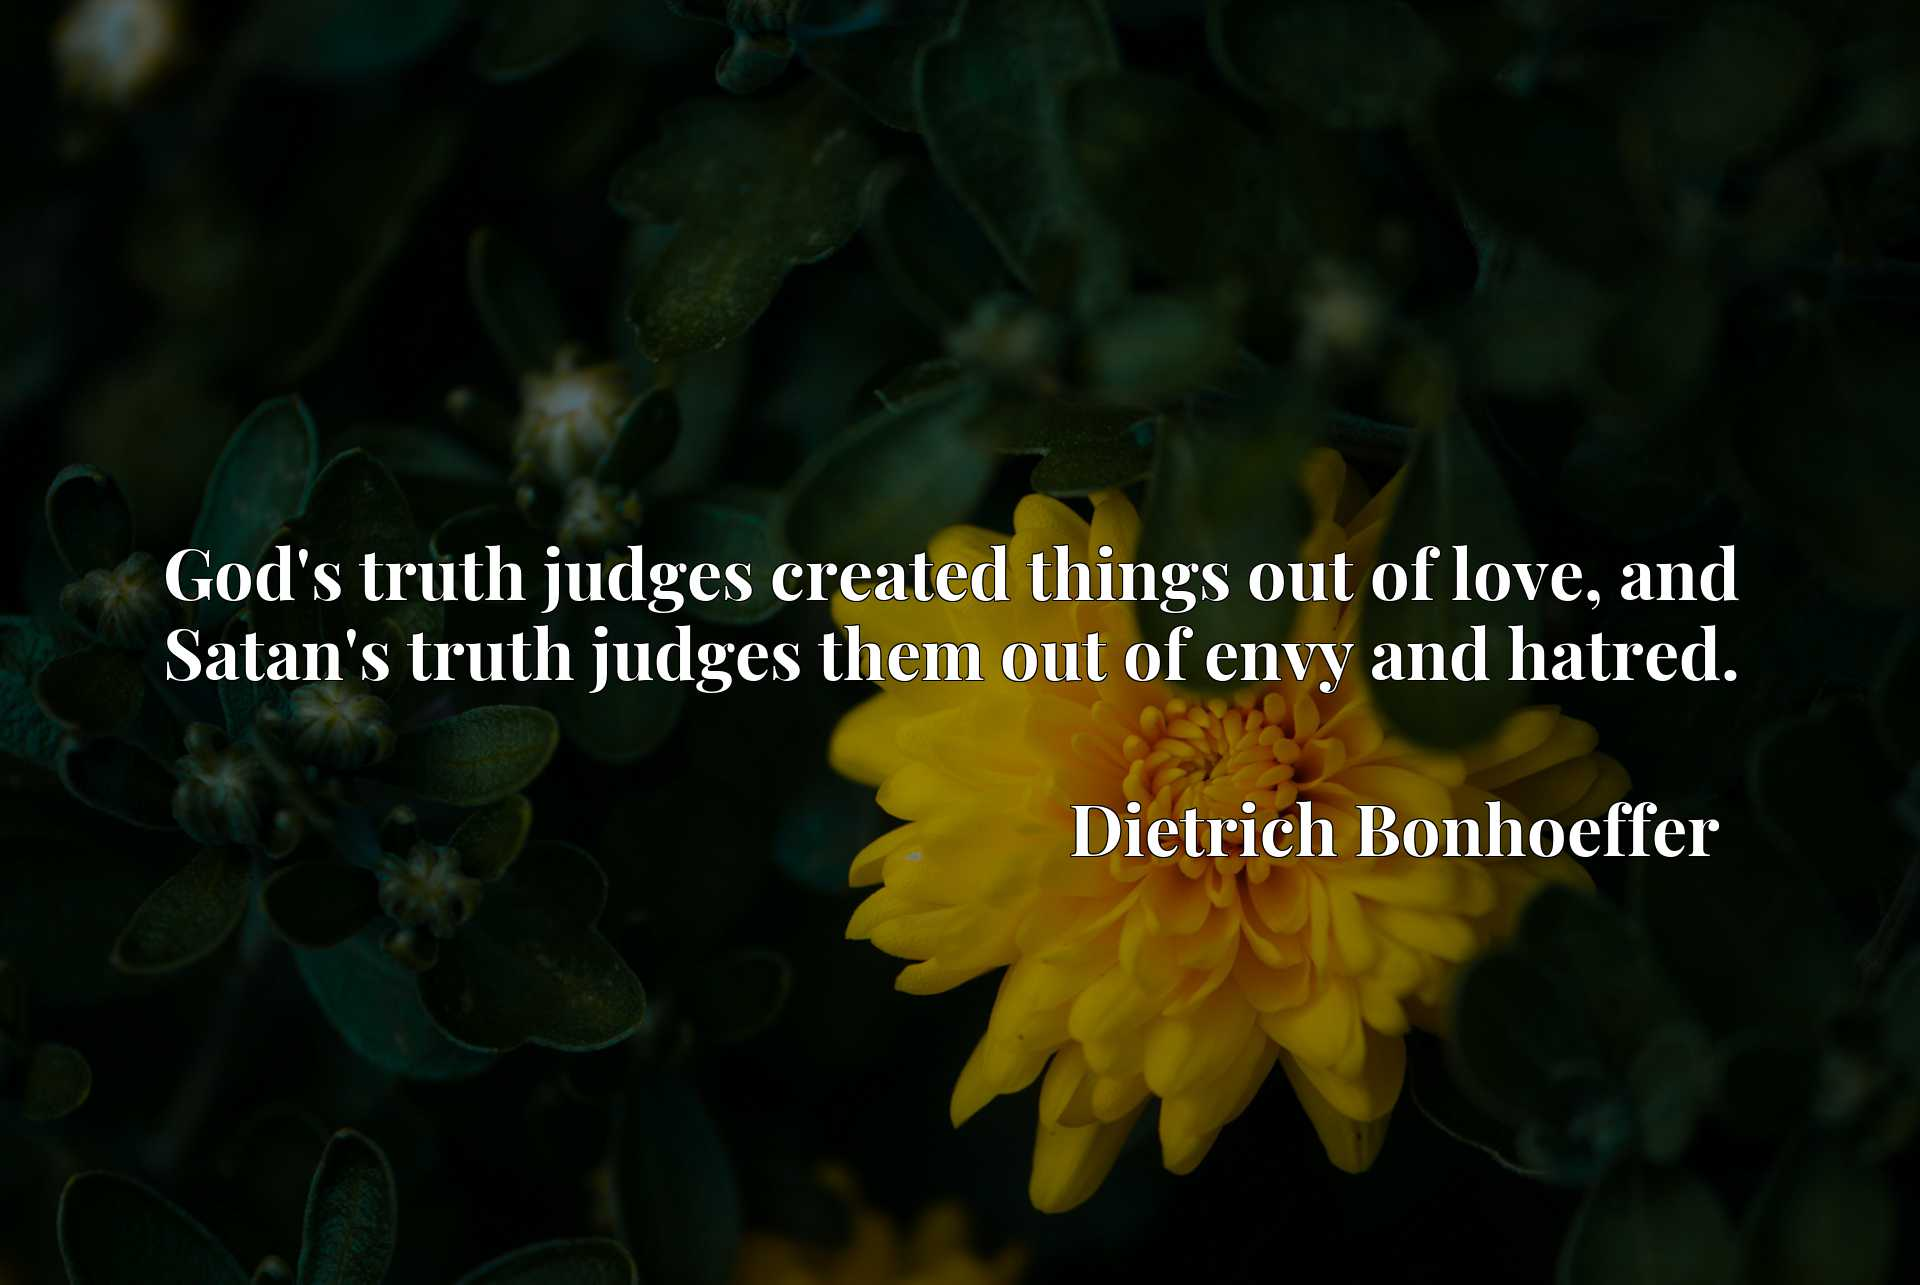 God's truth judges created things out of love, and Satan's truth judges them out of envy and hatred.